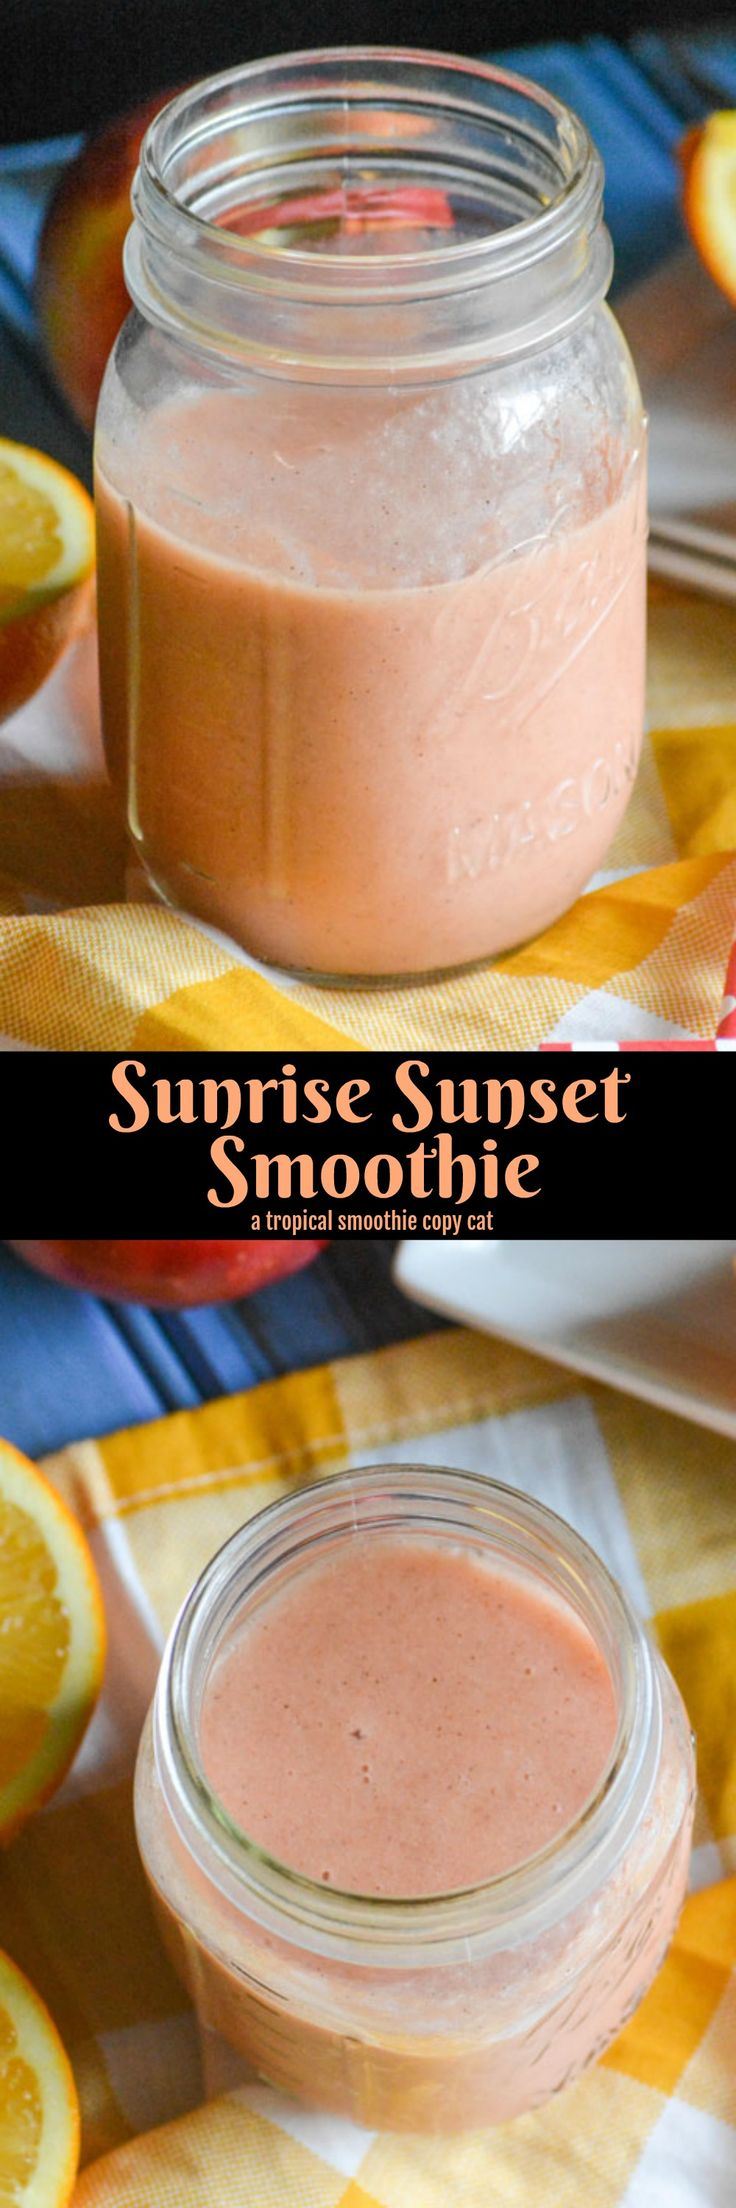 Copy Cat Tropical Smoothie Sunrise Sunset Smoothie | A quick and easy treat, featuring plenty of healthy fruit, this Copycat Tropical Smoothie Sunrise Sunset Smoothie is a spot on duplicate of your favorite cafe's frozen treat. An indulgent breakfast to share, a perfect dessert, even a special snack- this smoothie is what sweet memories are made of! | 4 Sons 'R' Us